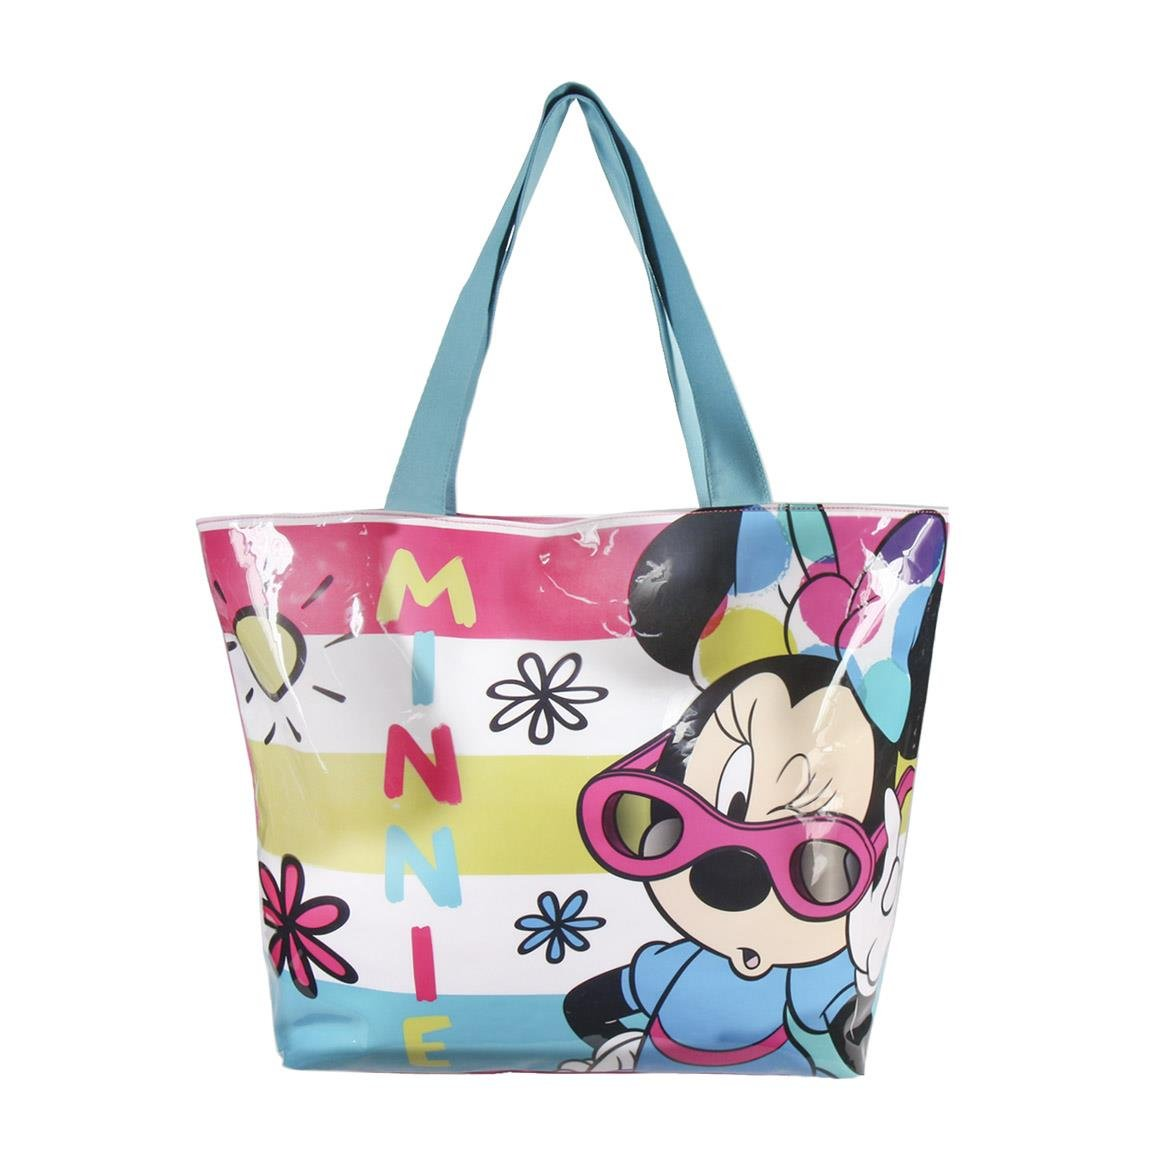 Cerda Beach bag Minnie, Multicolor, 19x14x5.5 cm Cerdá 2100002168